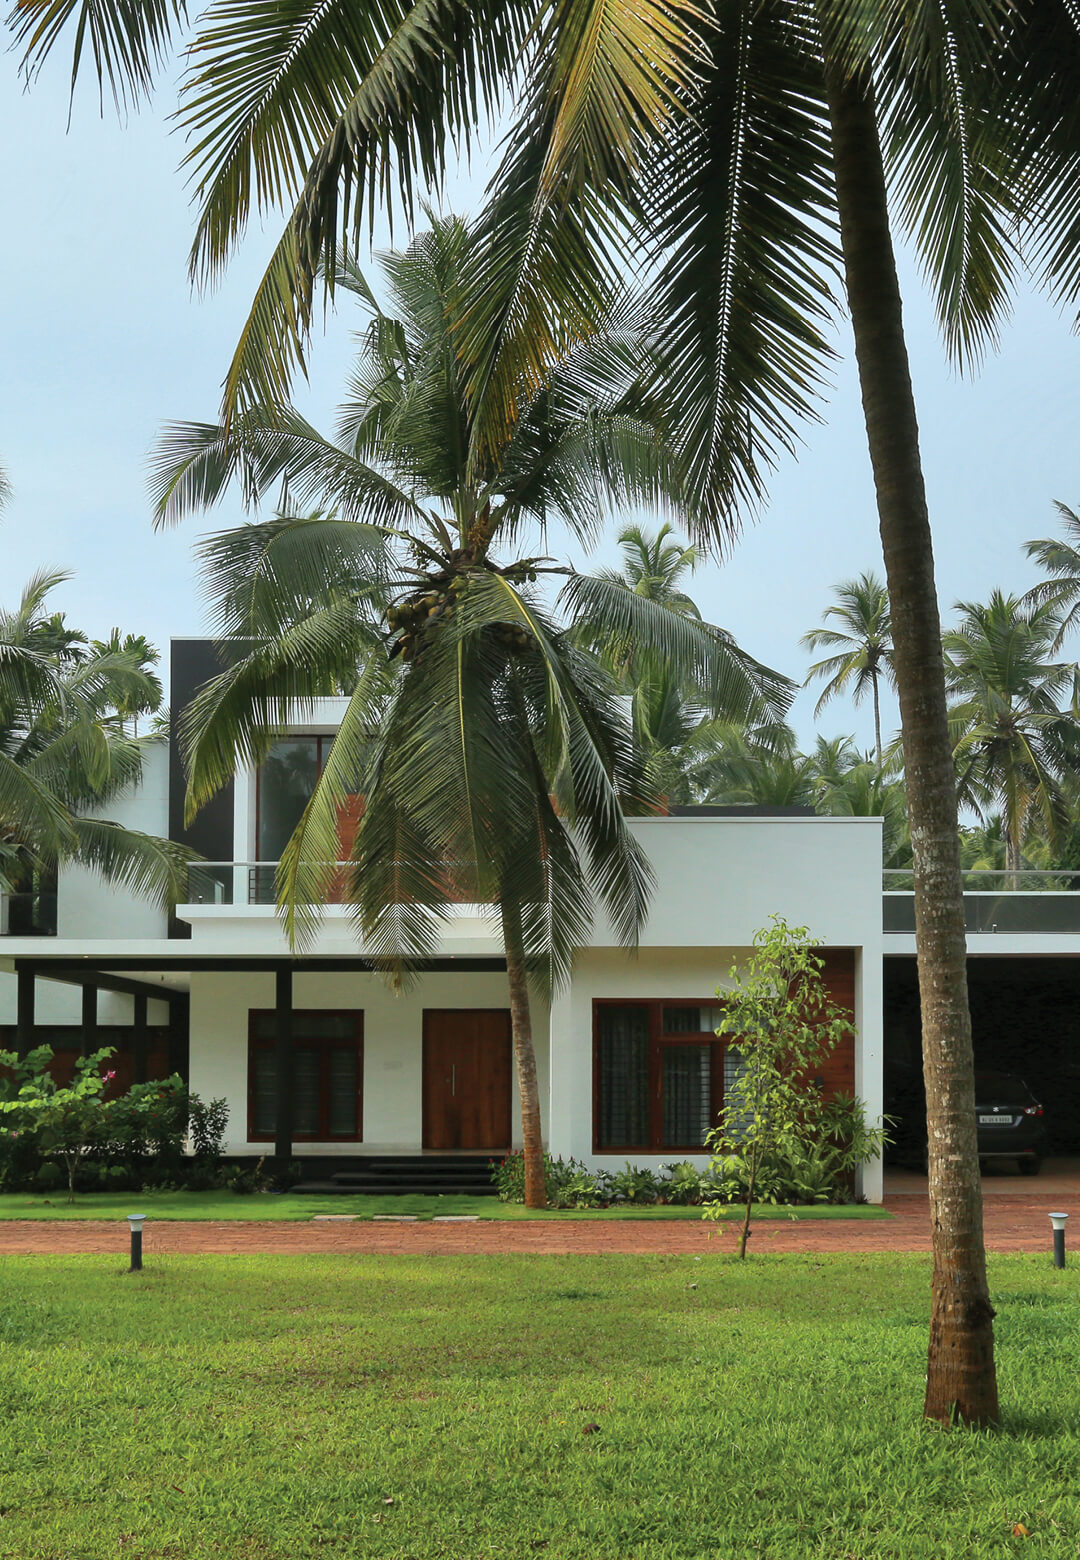 Box House in Kerala, India designed by Uru Consulting | Box House designed by Uru Consulting | STIRworld